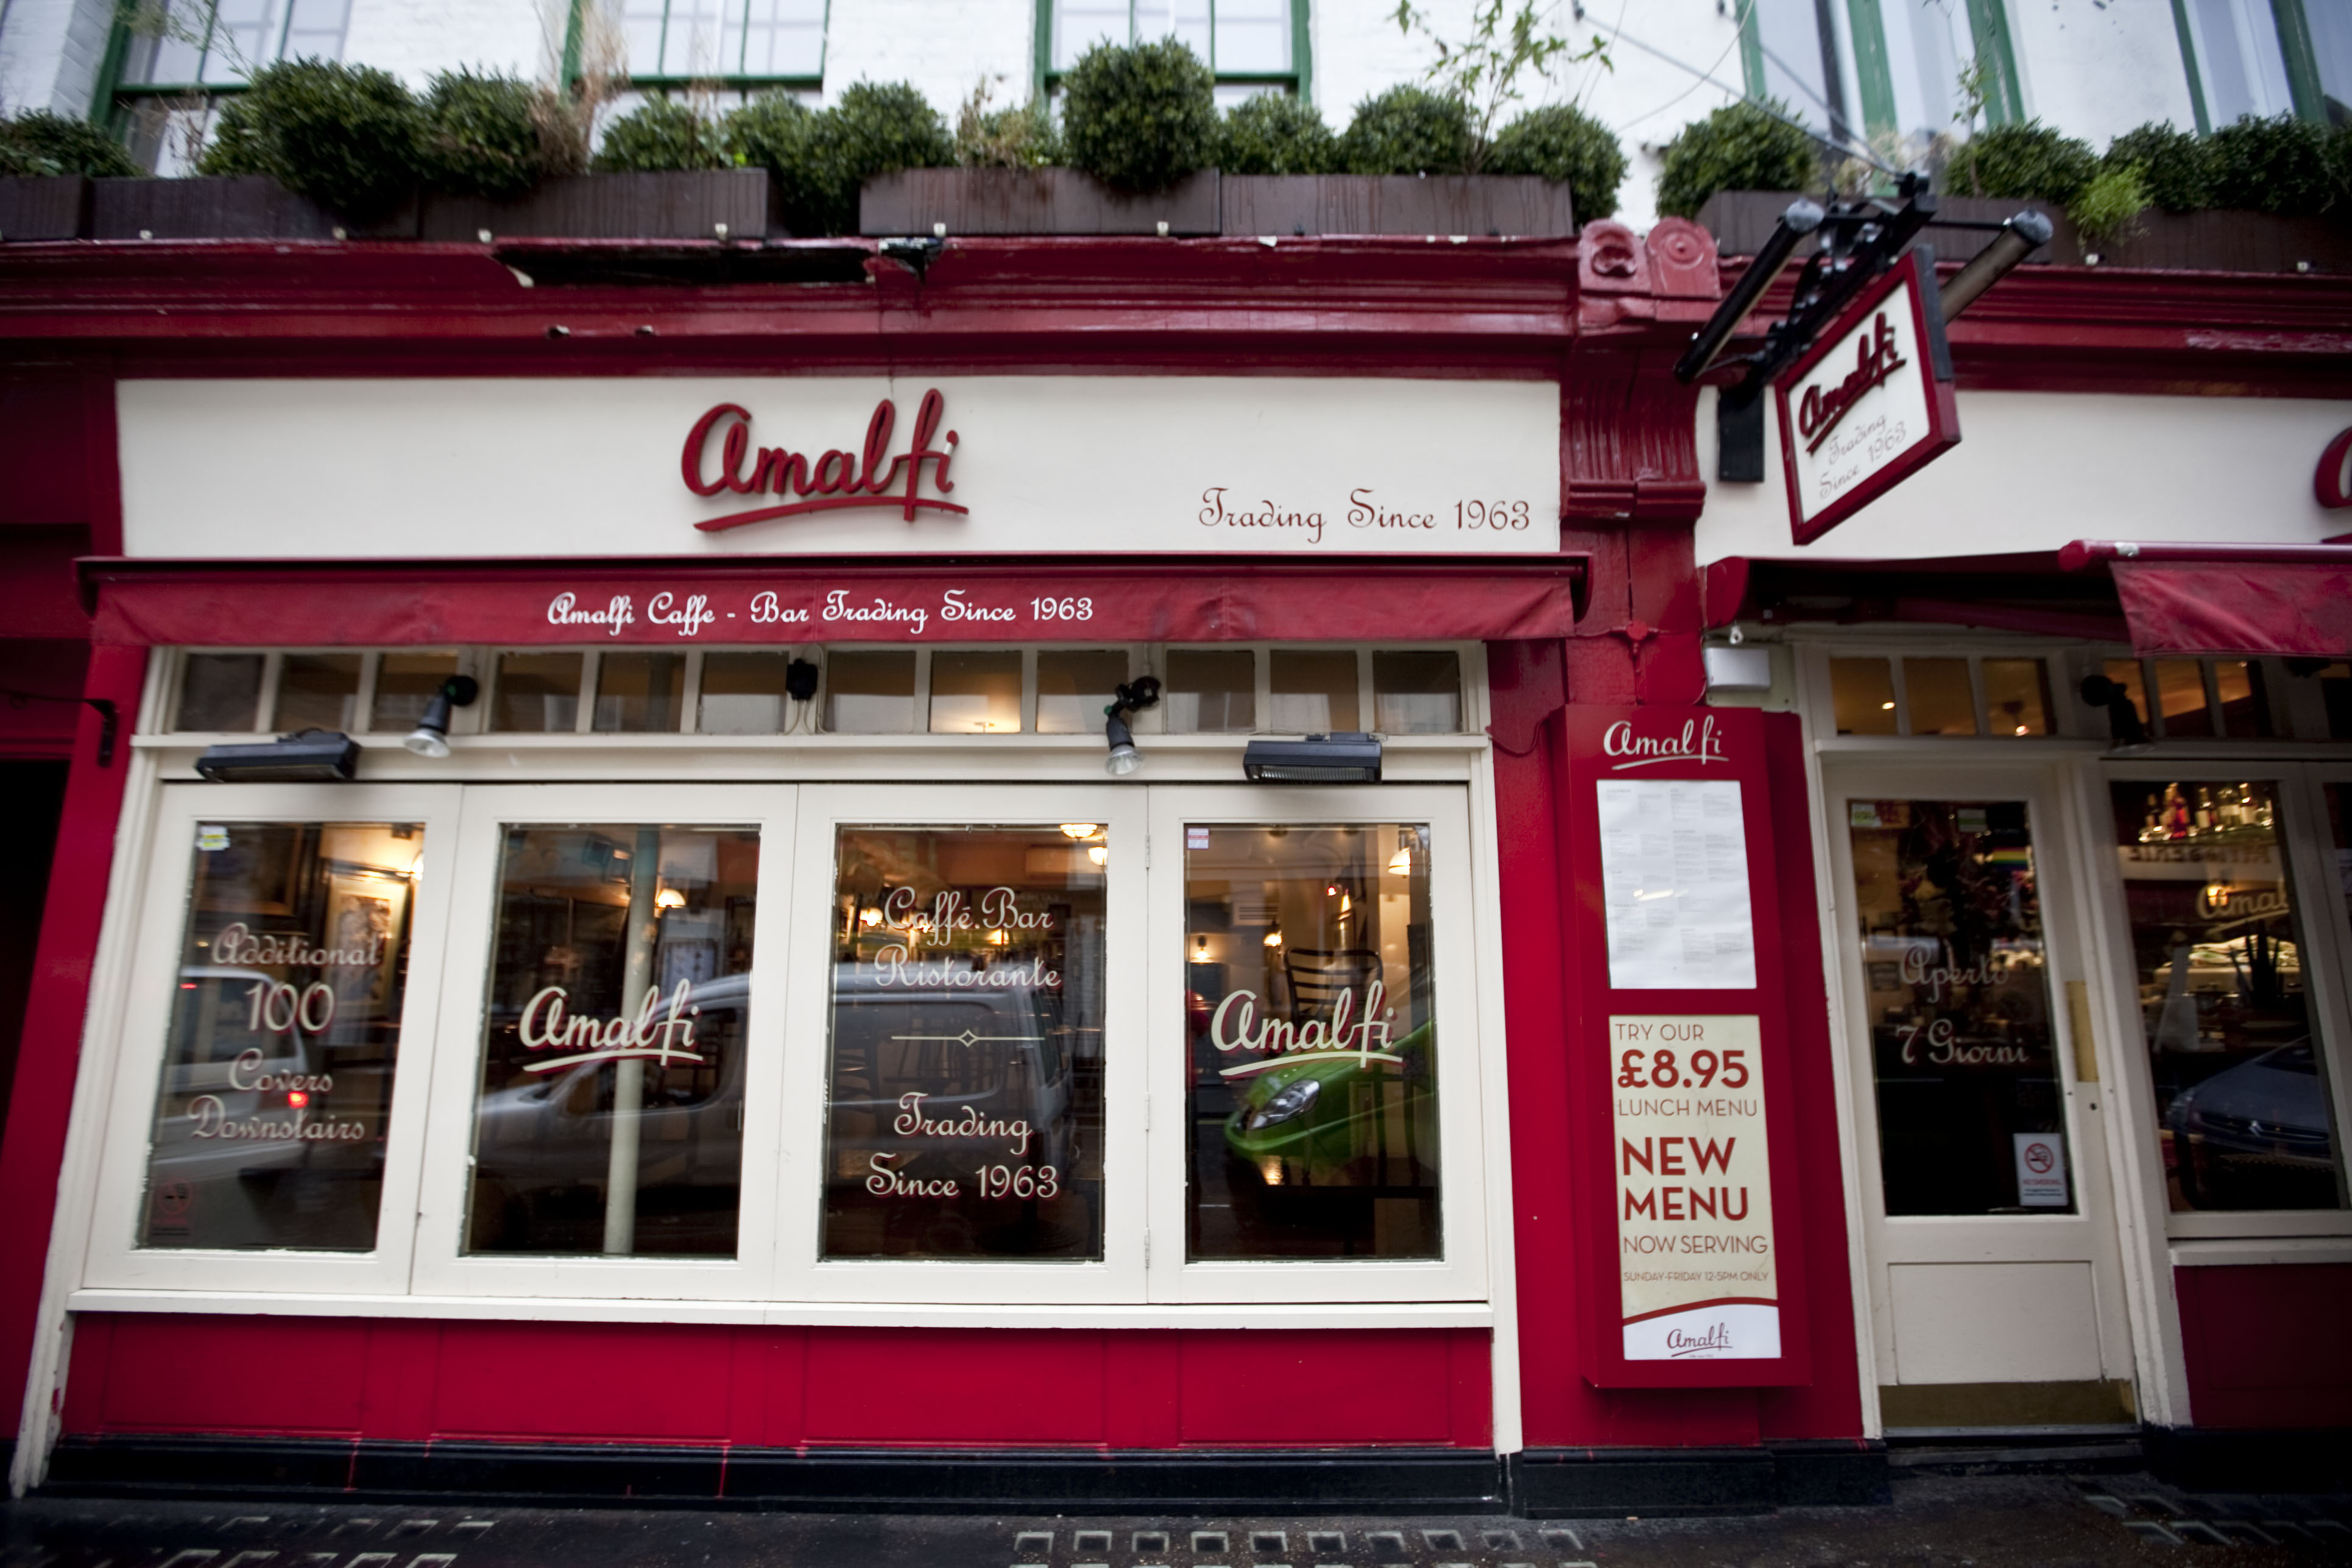 Reserve a table at Amalfi - Old Compton Street